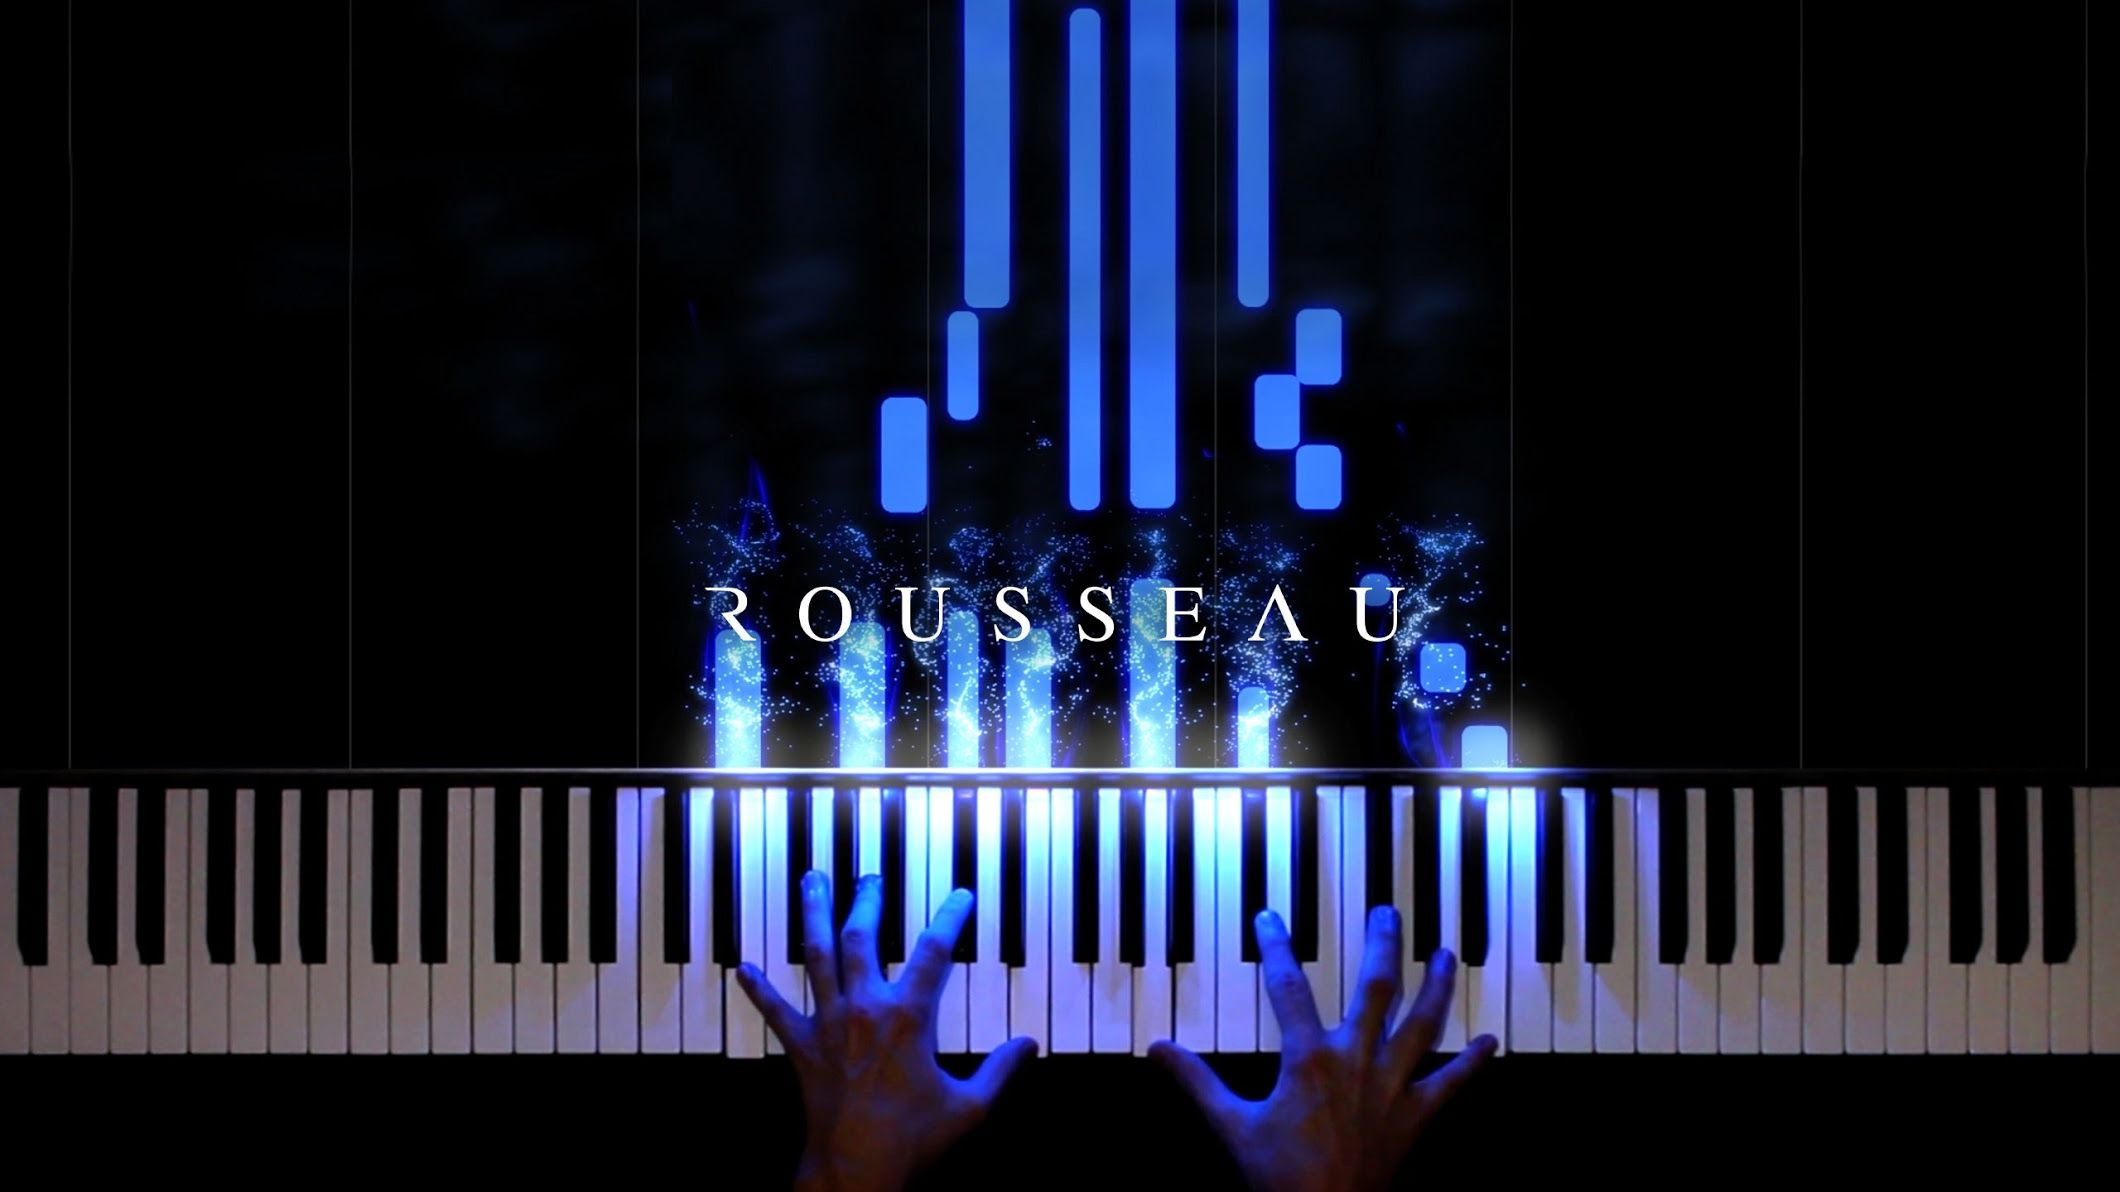 Rousseau - YouTube home page with *many* performances to choose from